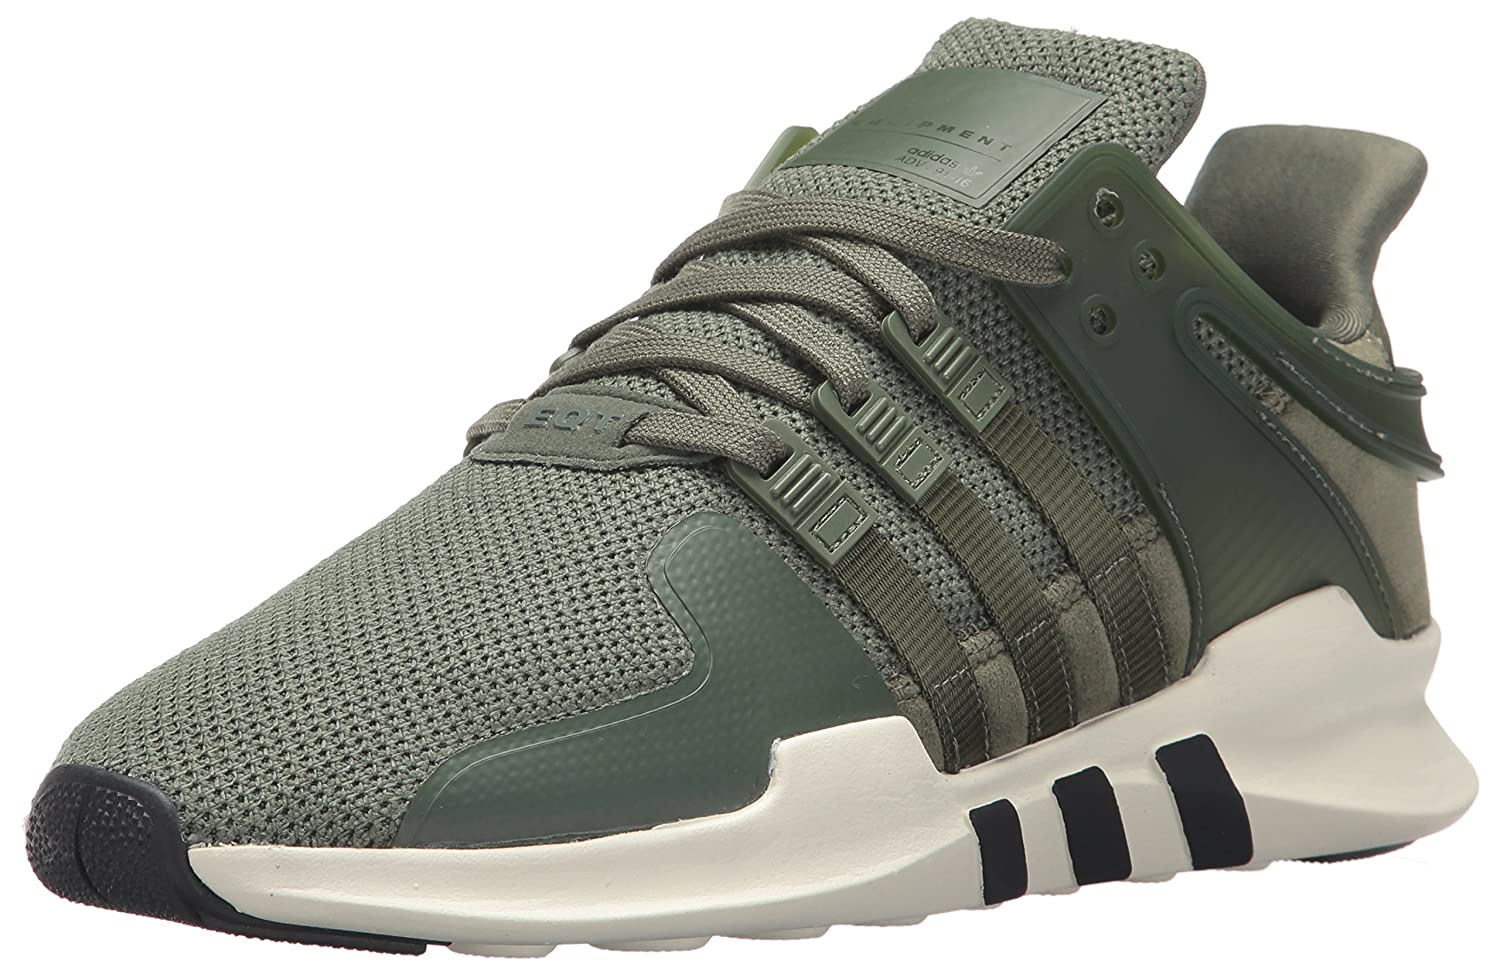 adidas Originals Women's EQT Support Adv W B06XPNYJKG 7 B(M) US|St Major/St Major/Off White